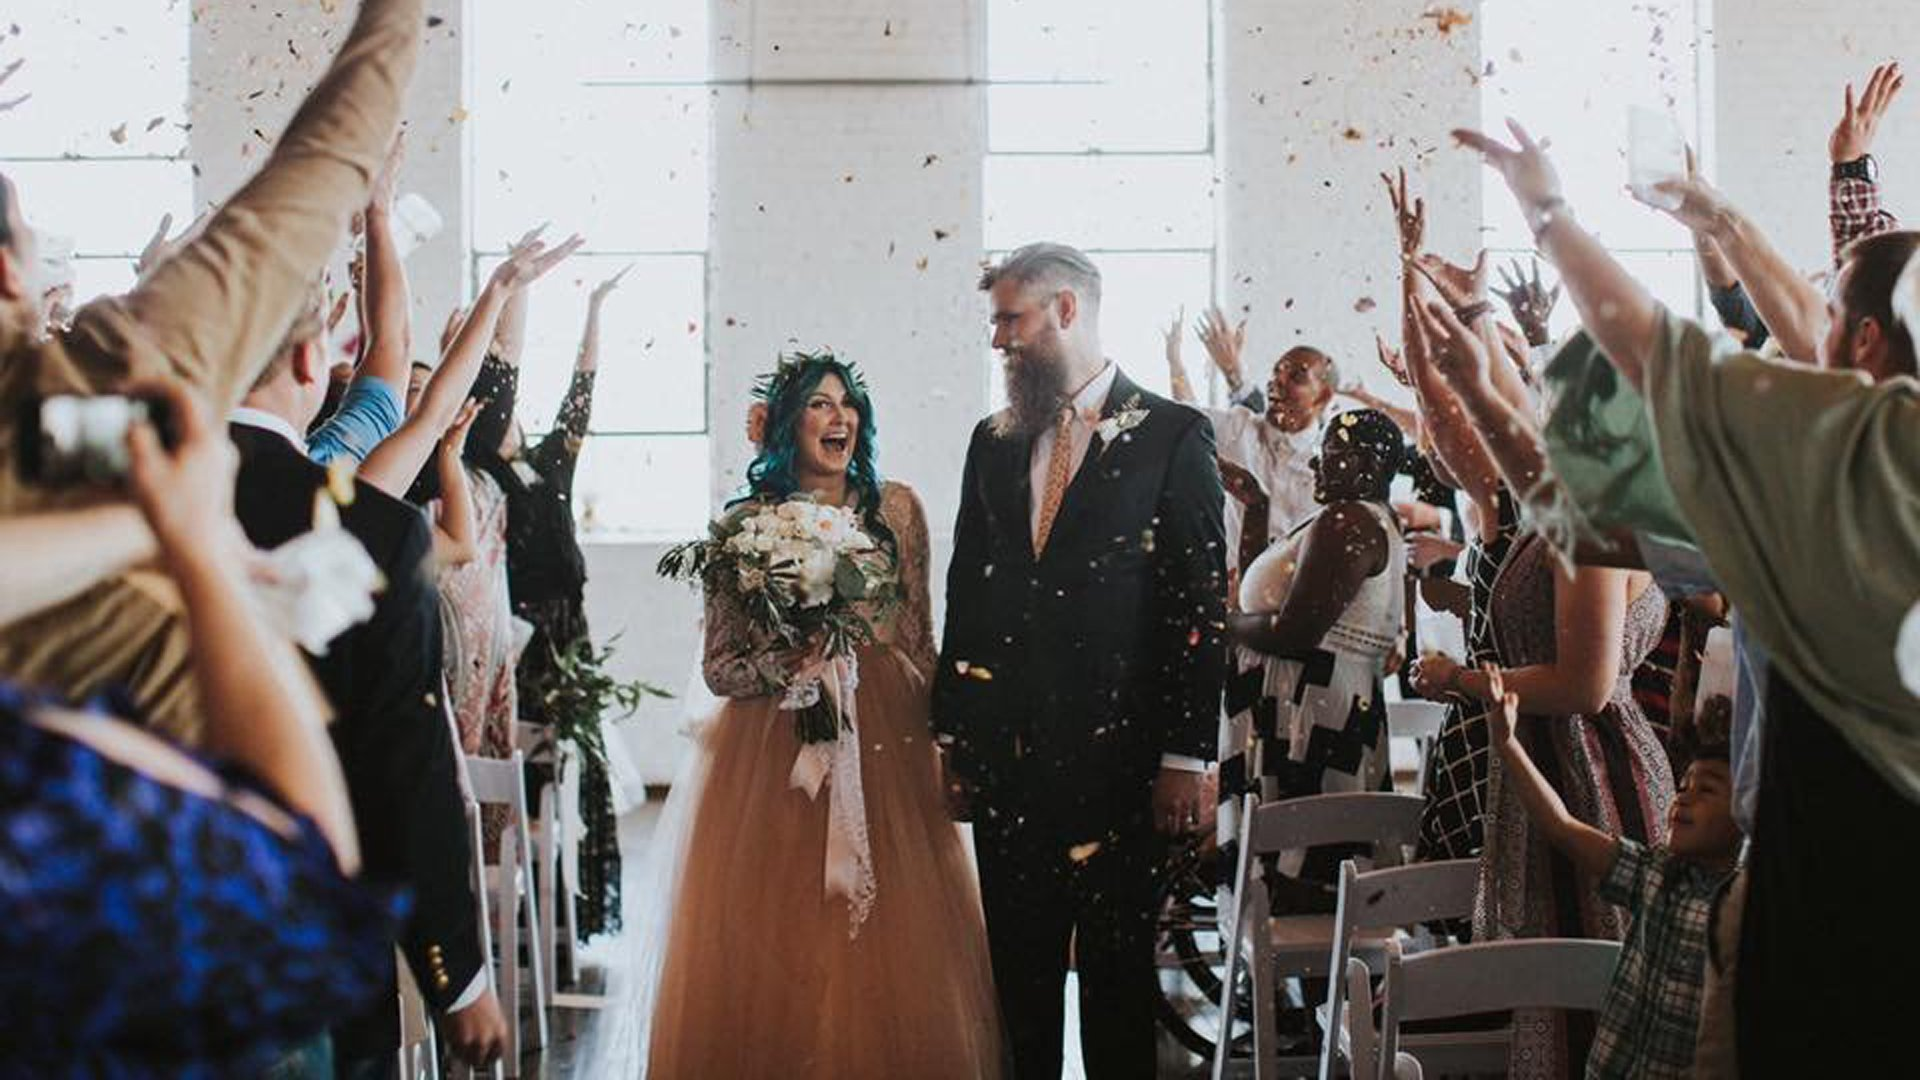 Paralyzed Woman Got To Walk Down The Aisle For Her Wedding Day